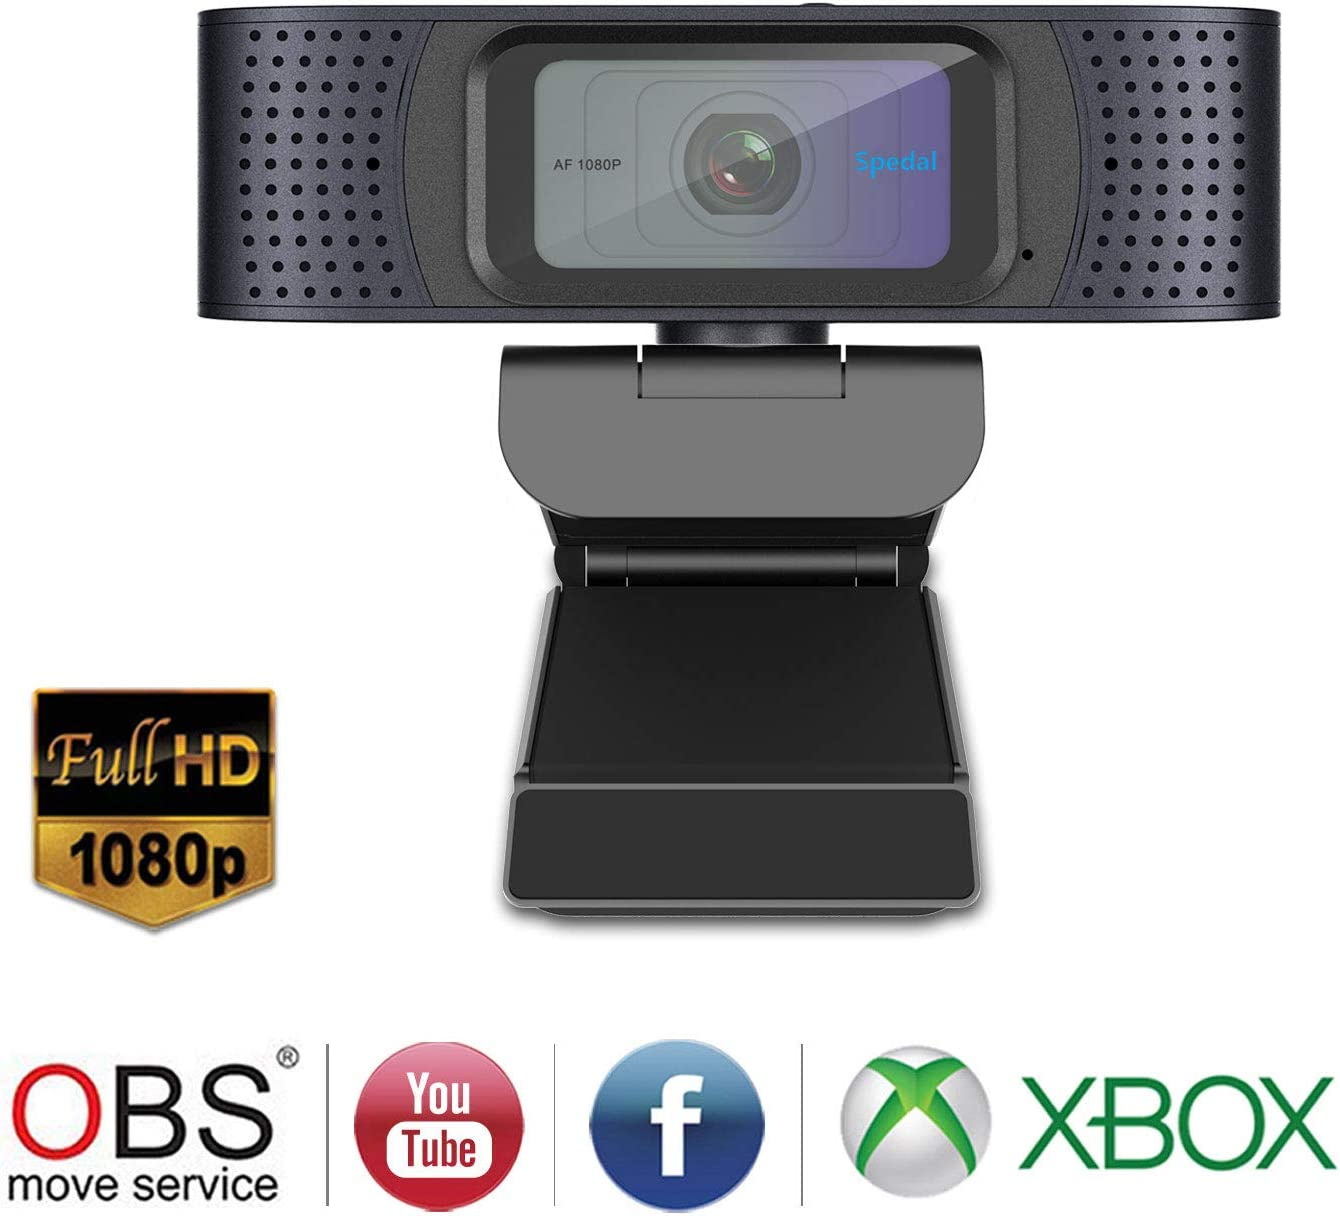 HD Webcam 1080P with Privacy Shutter Autofocus Streaming Camera USB Webcam with Dual Microphones Desktop or Laptop Webcam Computer Camera for Skype OBS YouTube Twitch